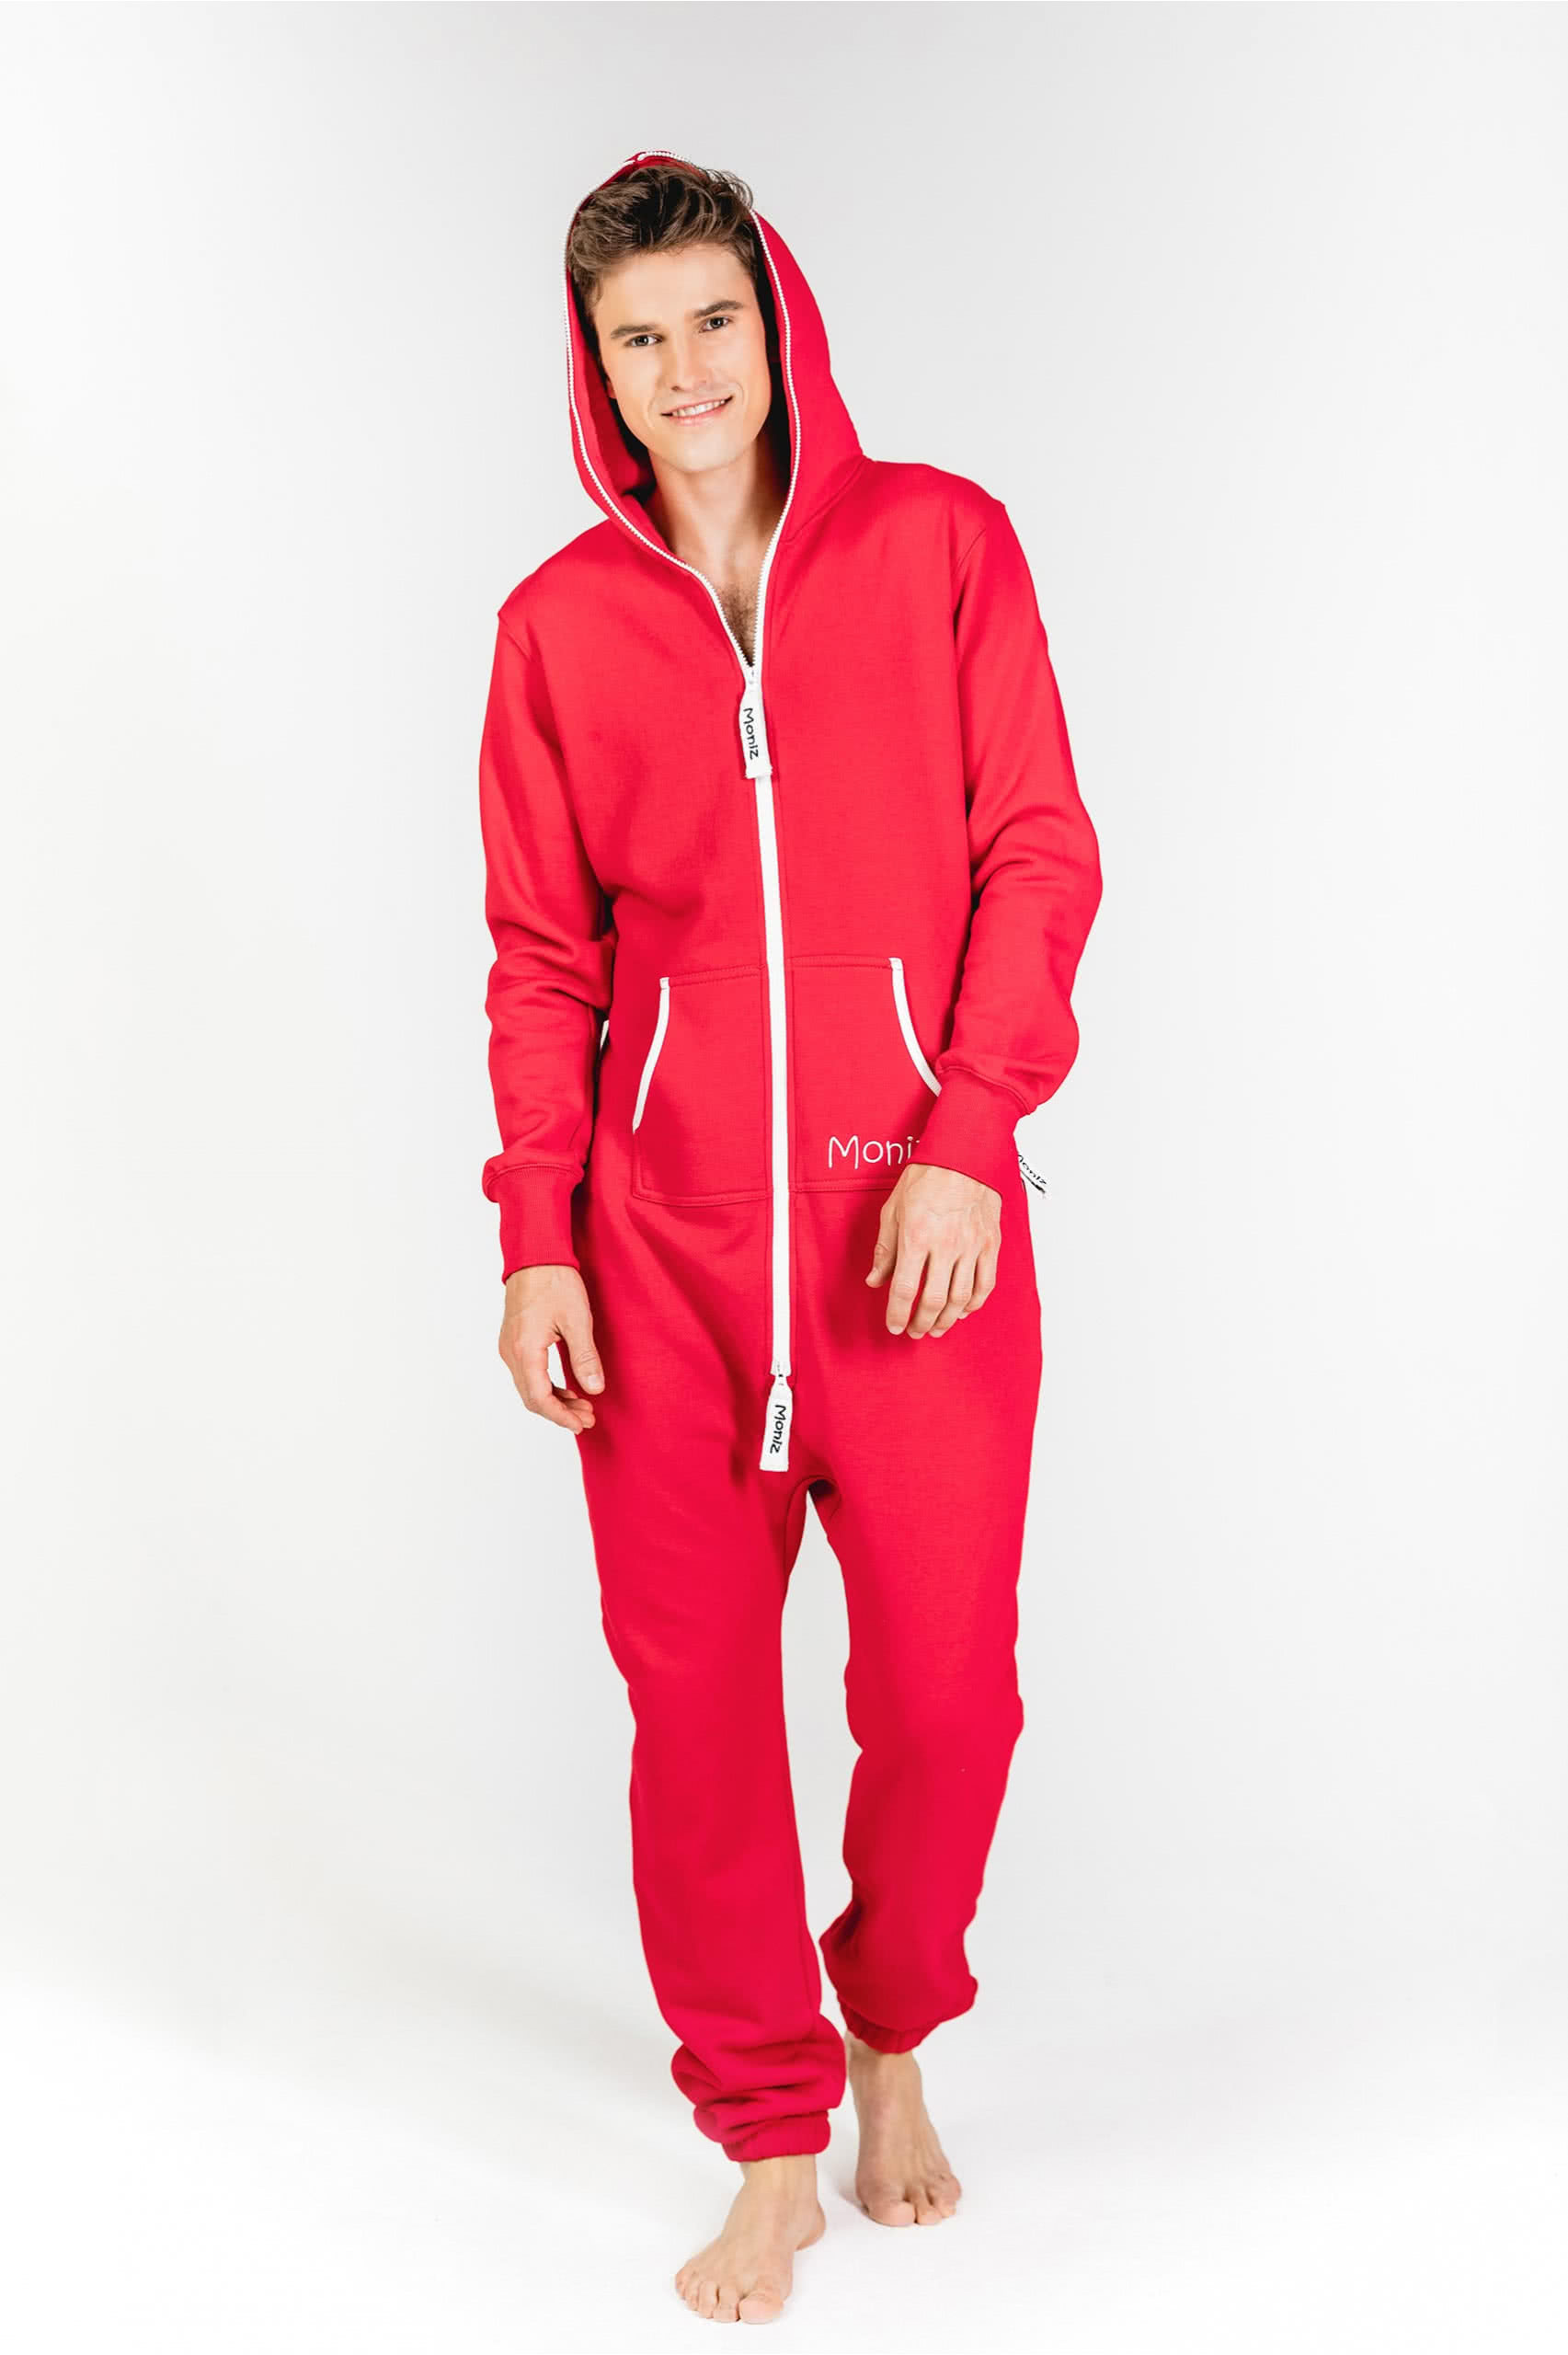 Moniz Herren Jumpsuit Rot - Strawberry Red